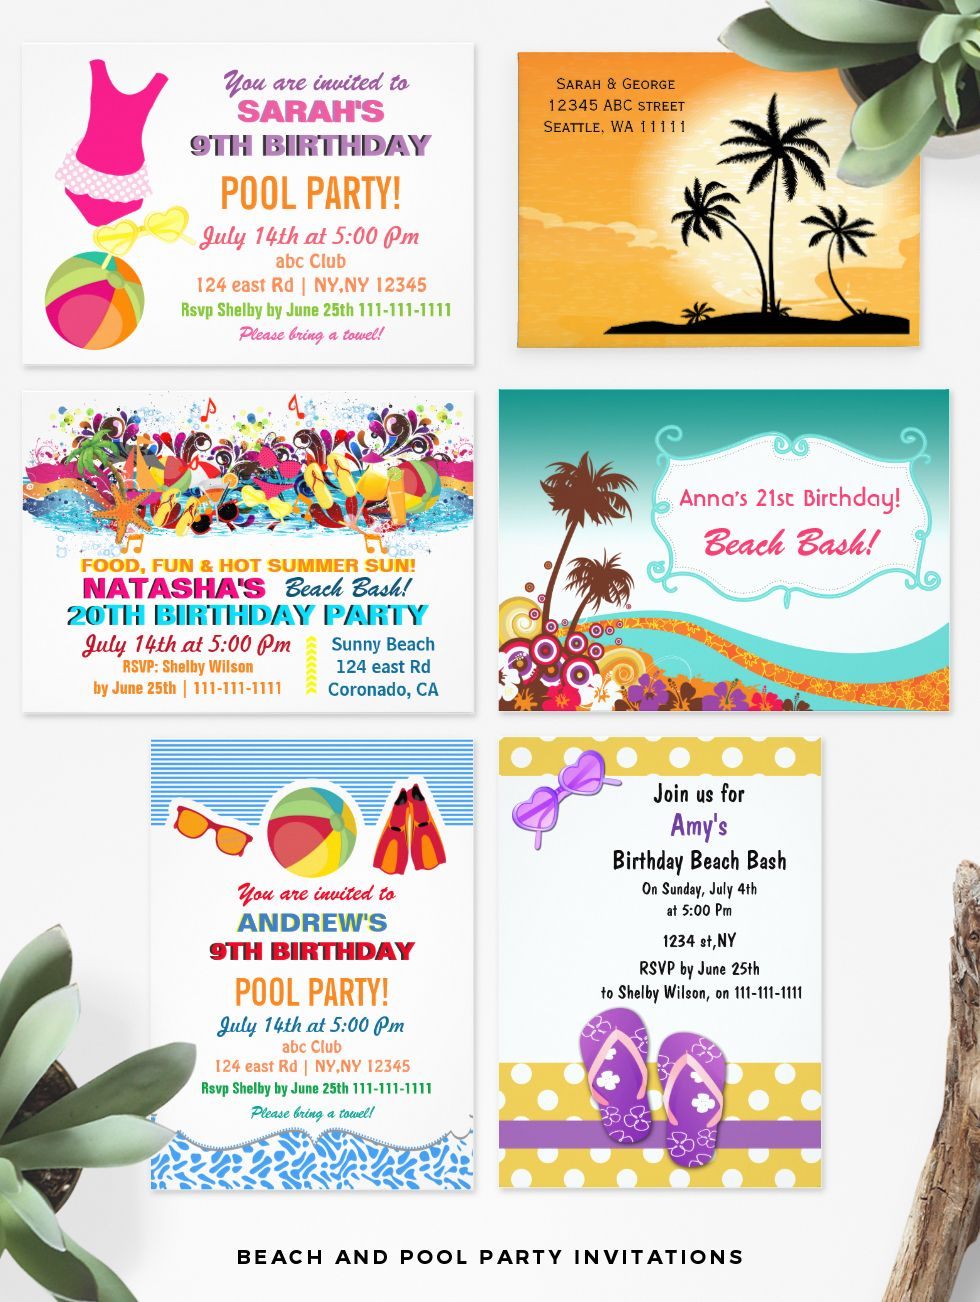 Beach and Pool Party Invitations   Beach Party Invitations ...